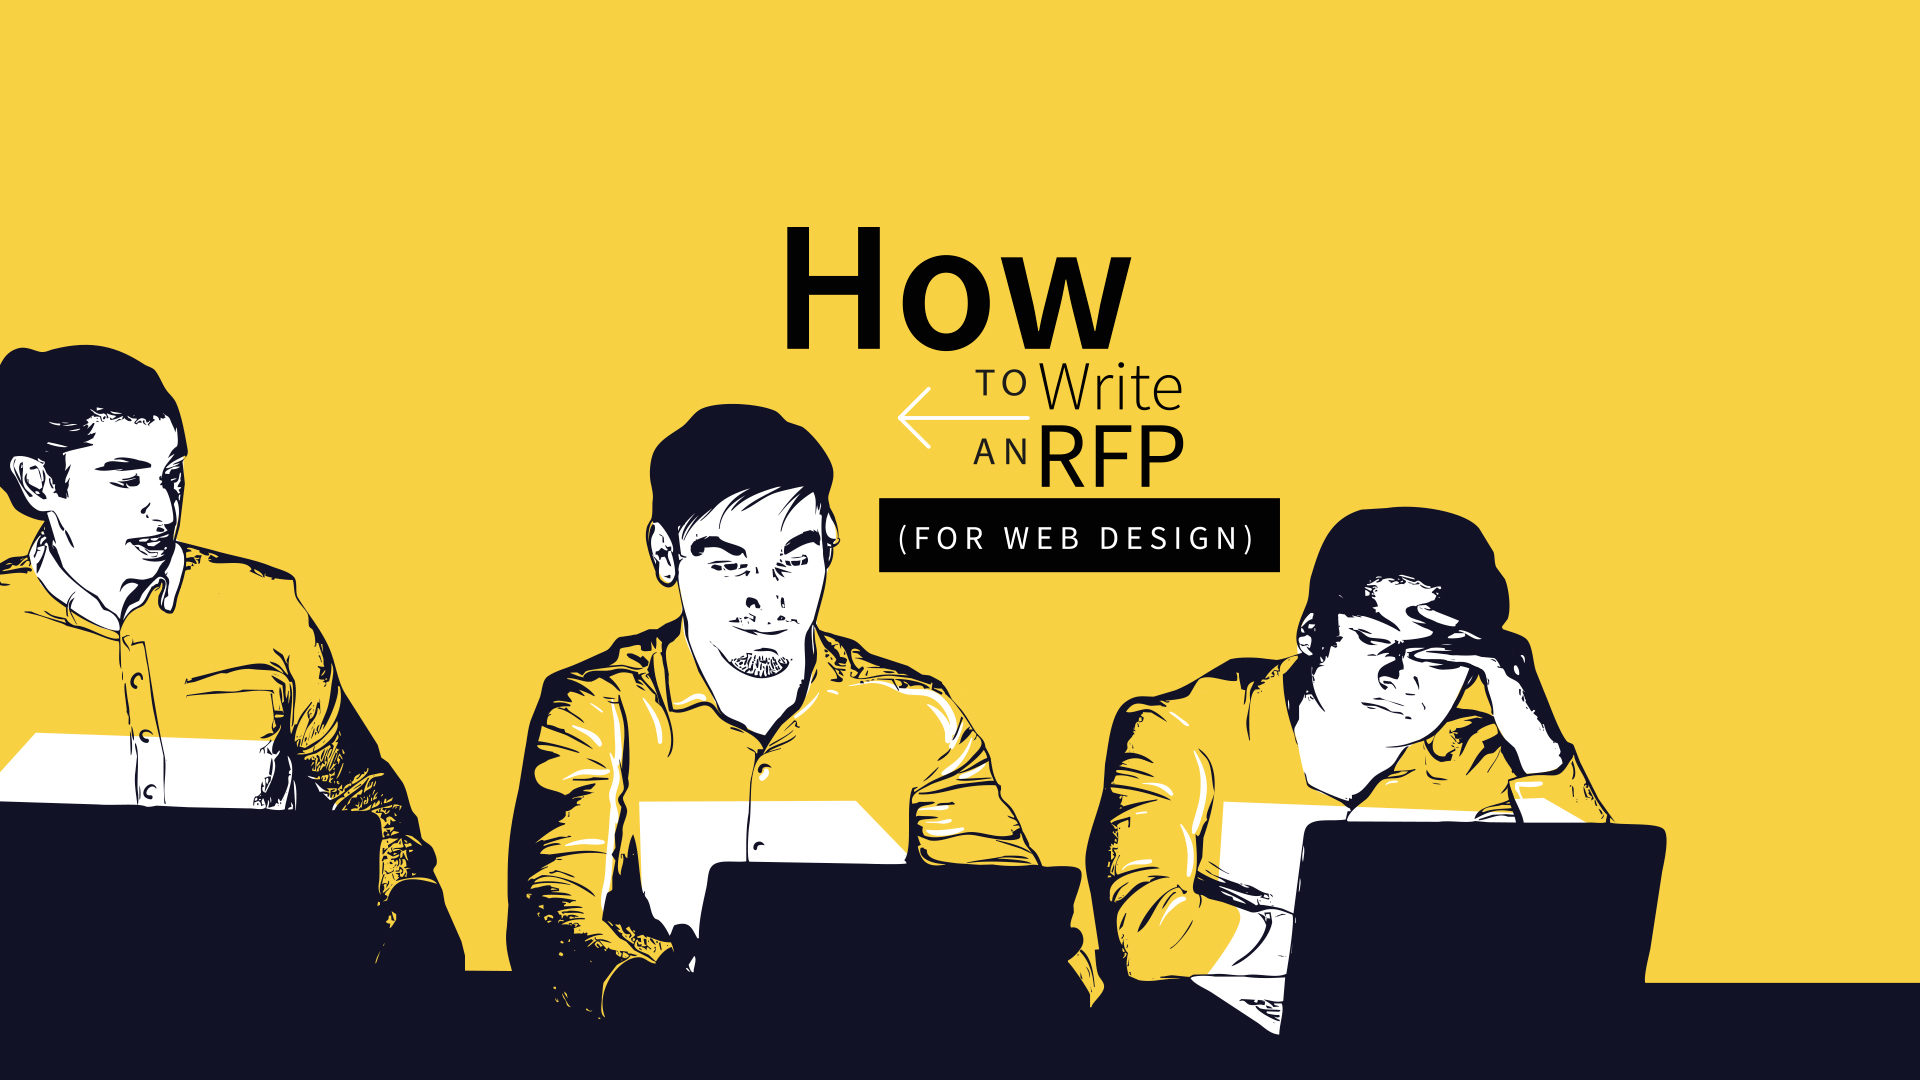 How to Write an RFP for Web Design